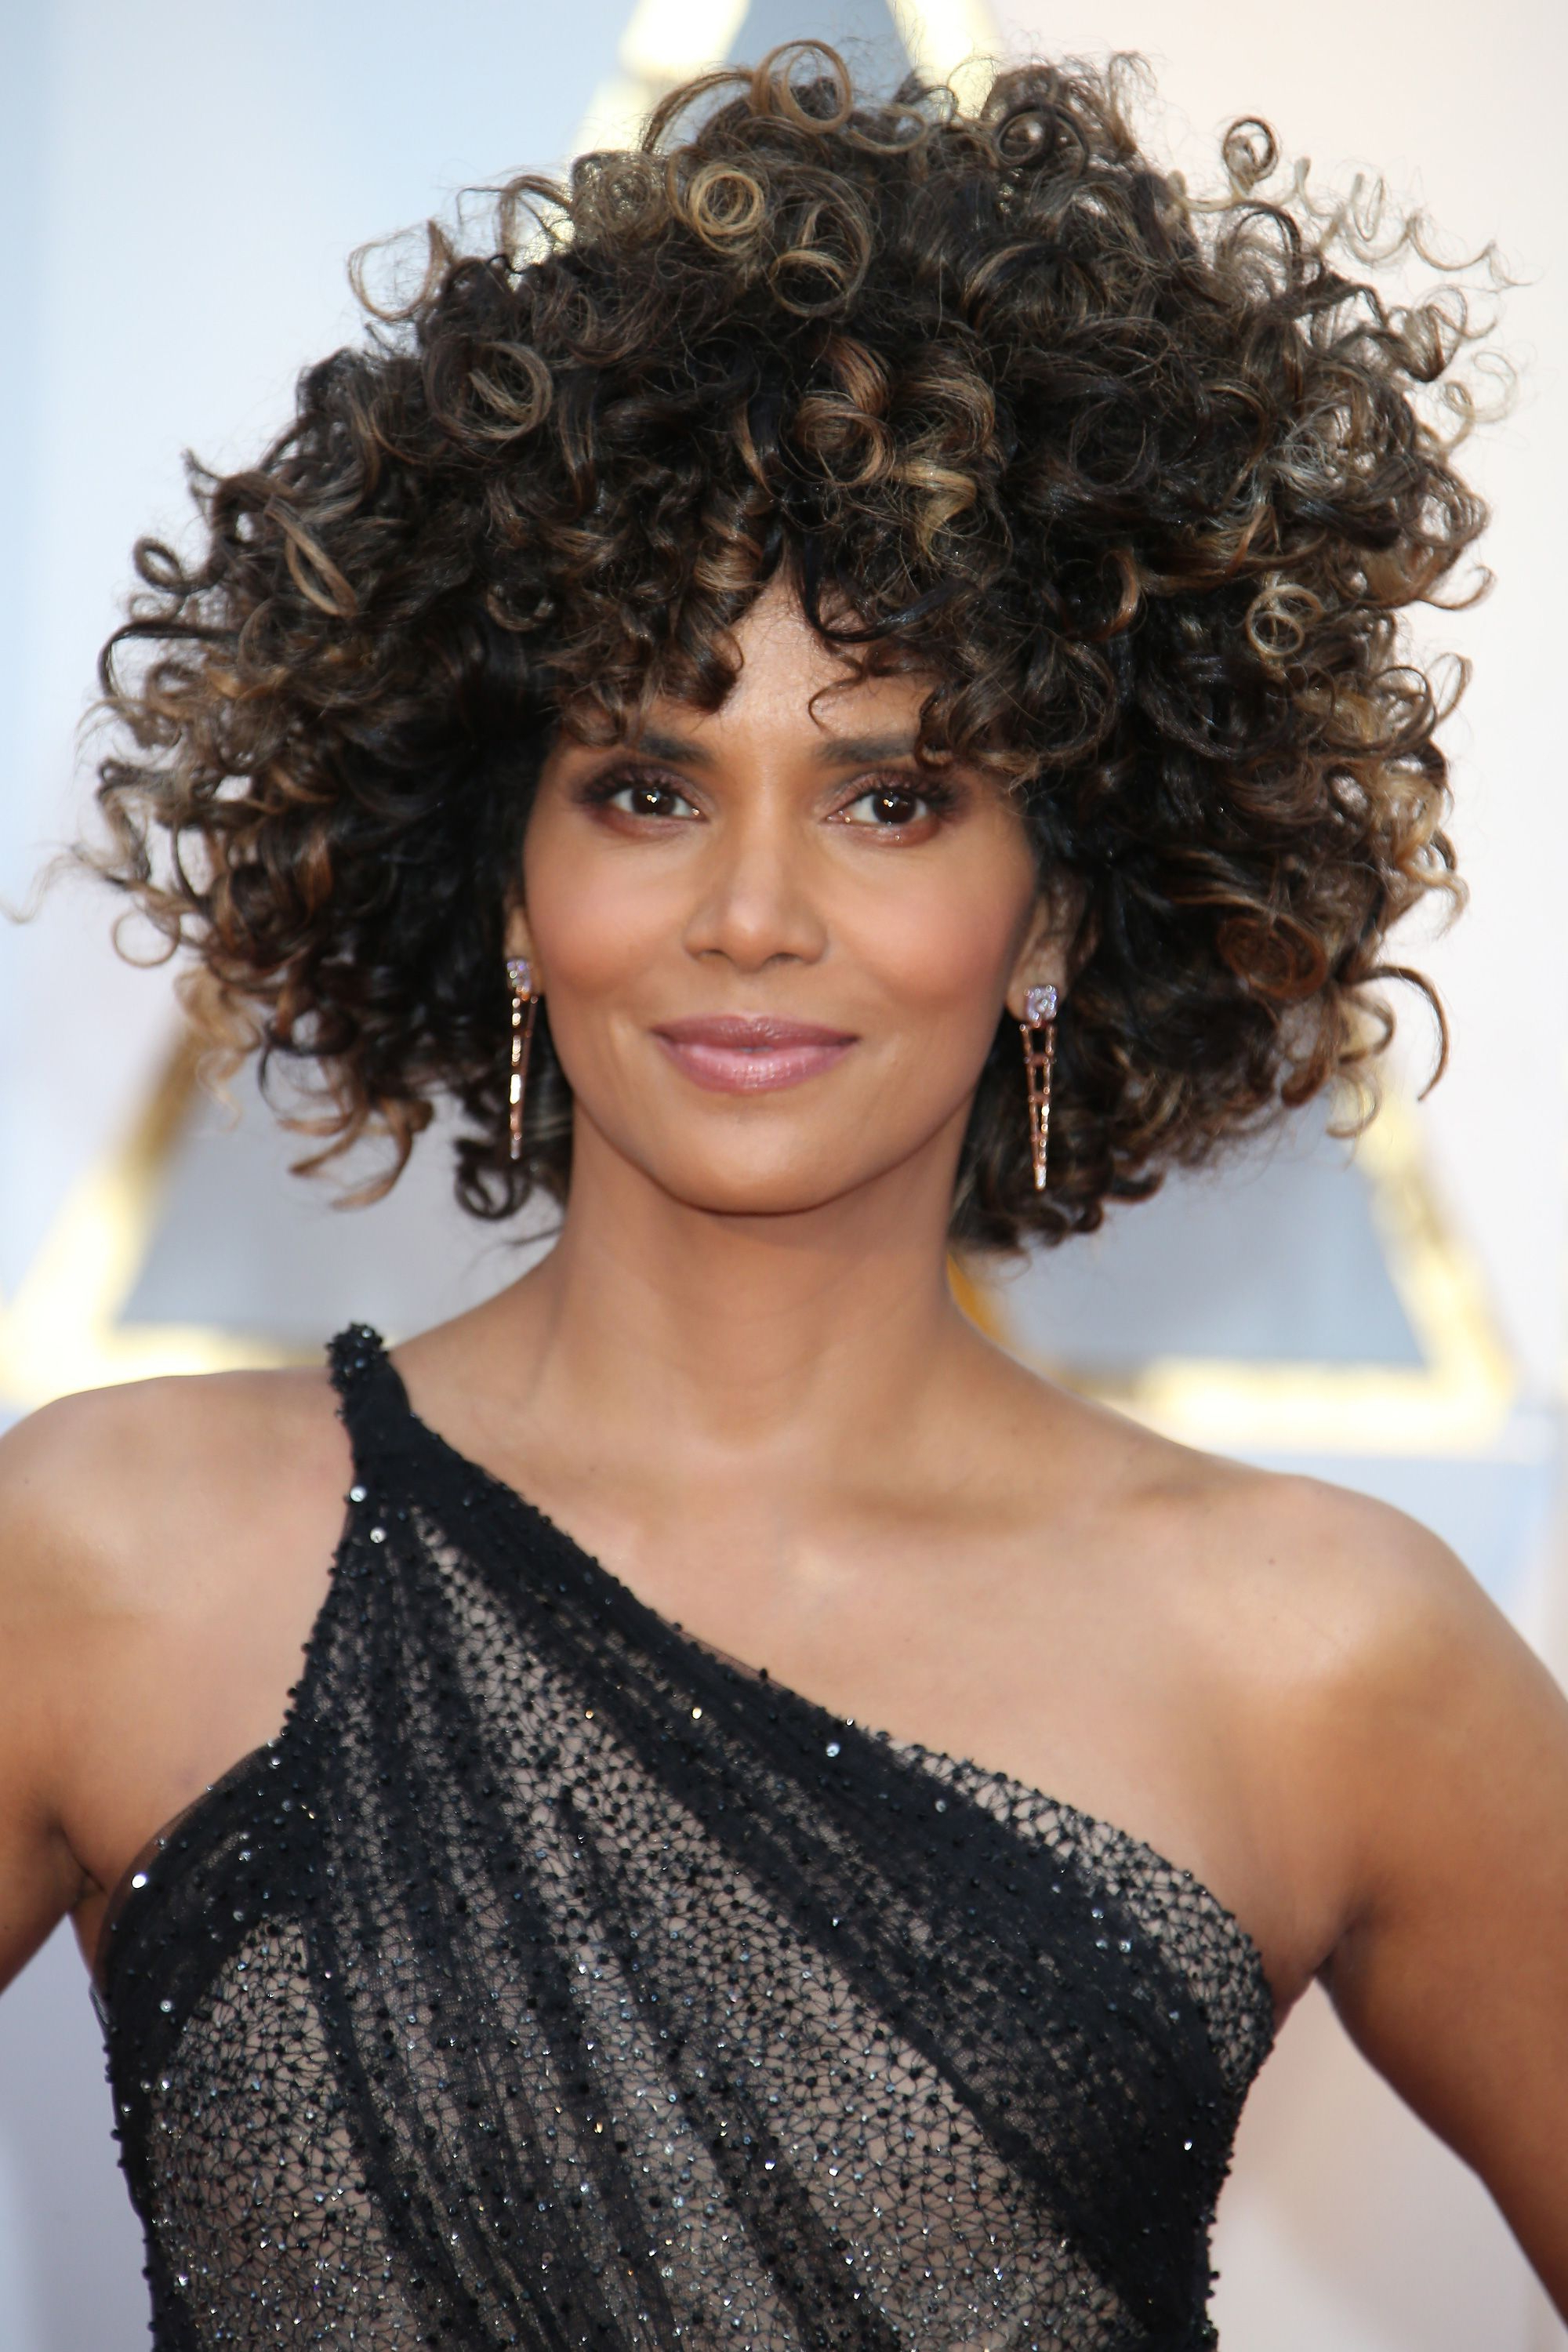 Fashionable Soft Medium Hairstyles For Black Women In 42 Easy Curly Hairstyles – Short, Medium, And Long Haircuts For (View 12 of 20)